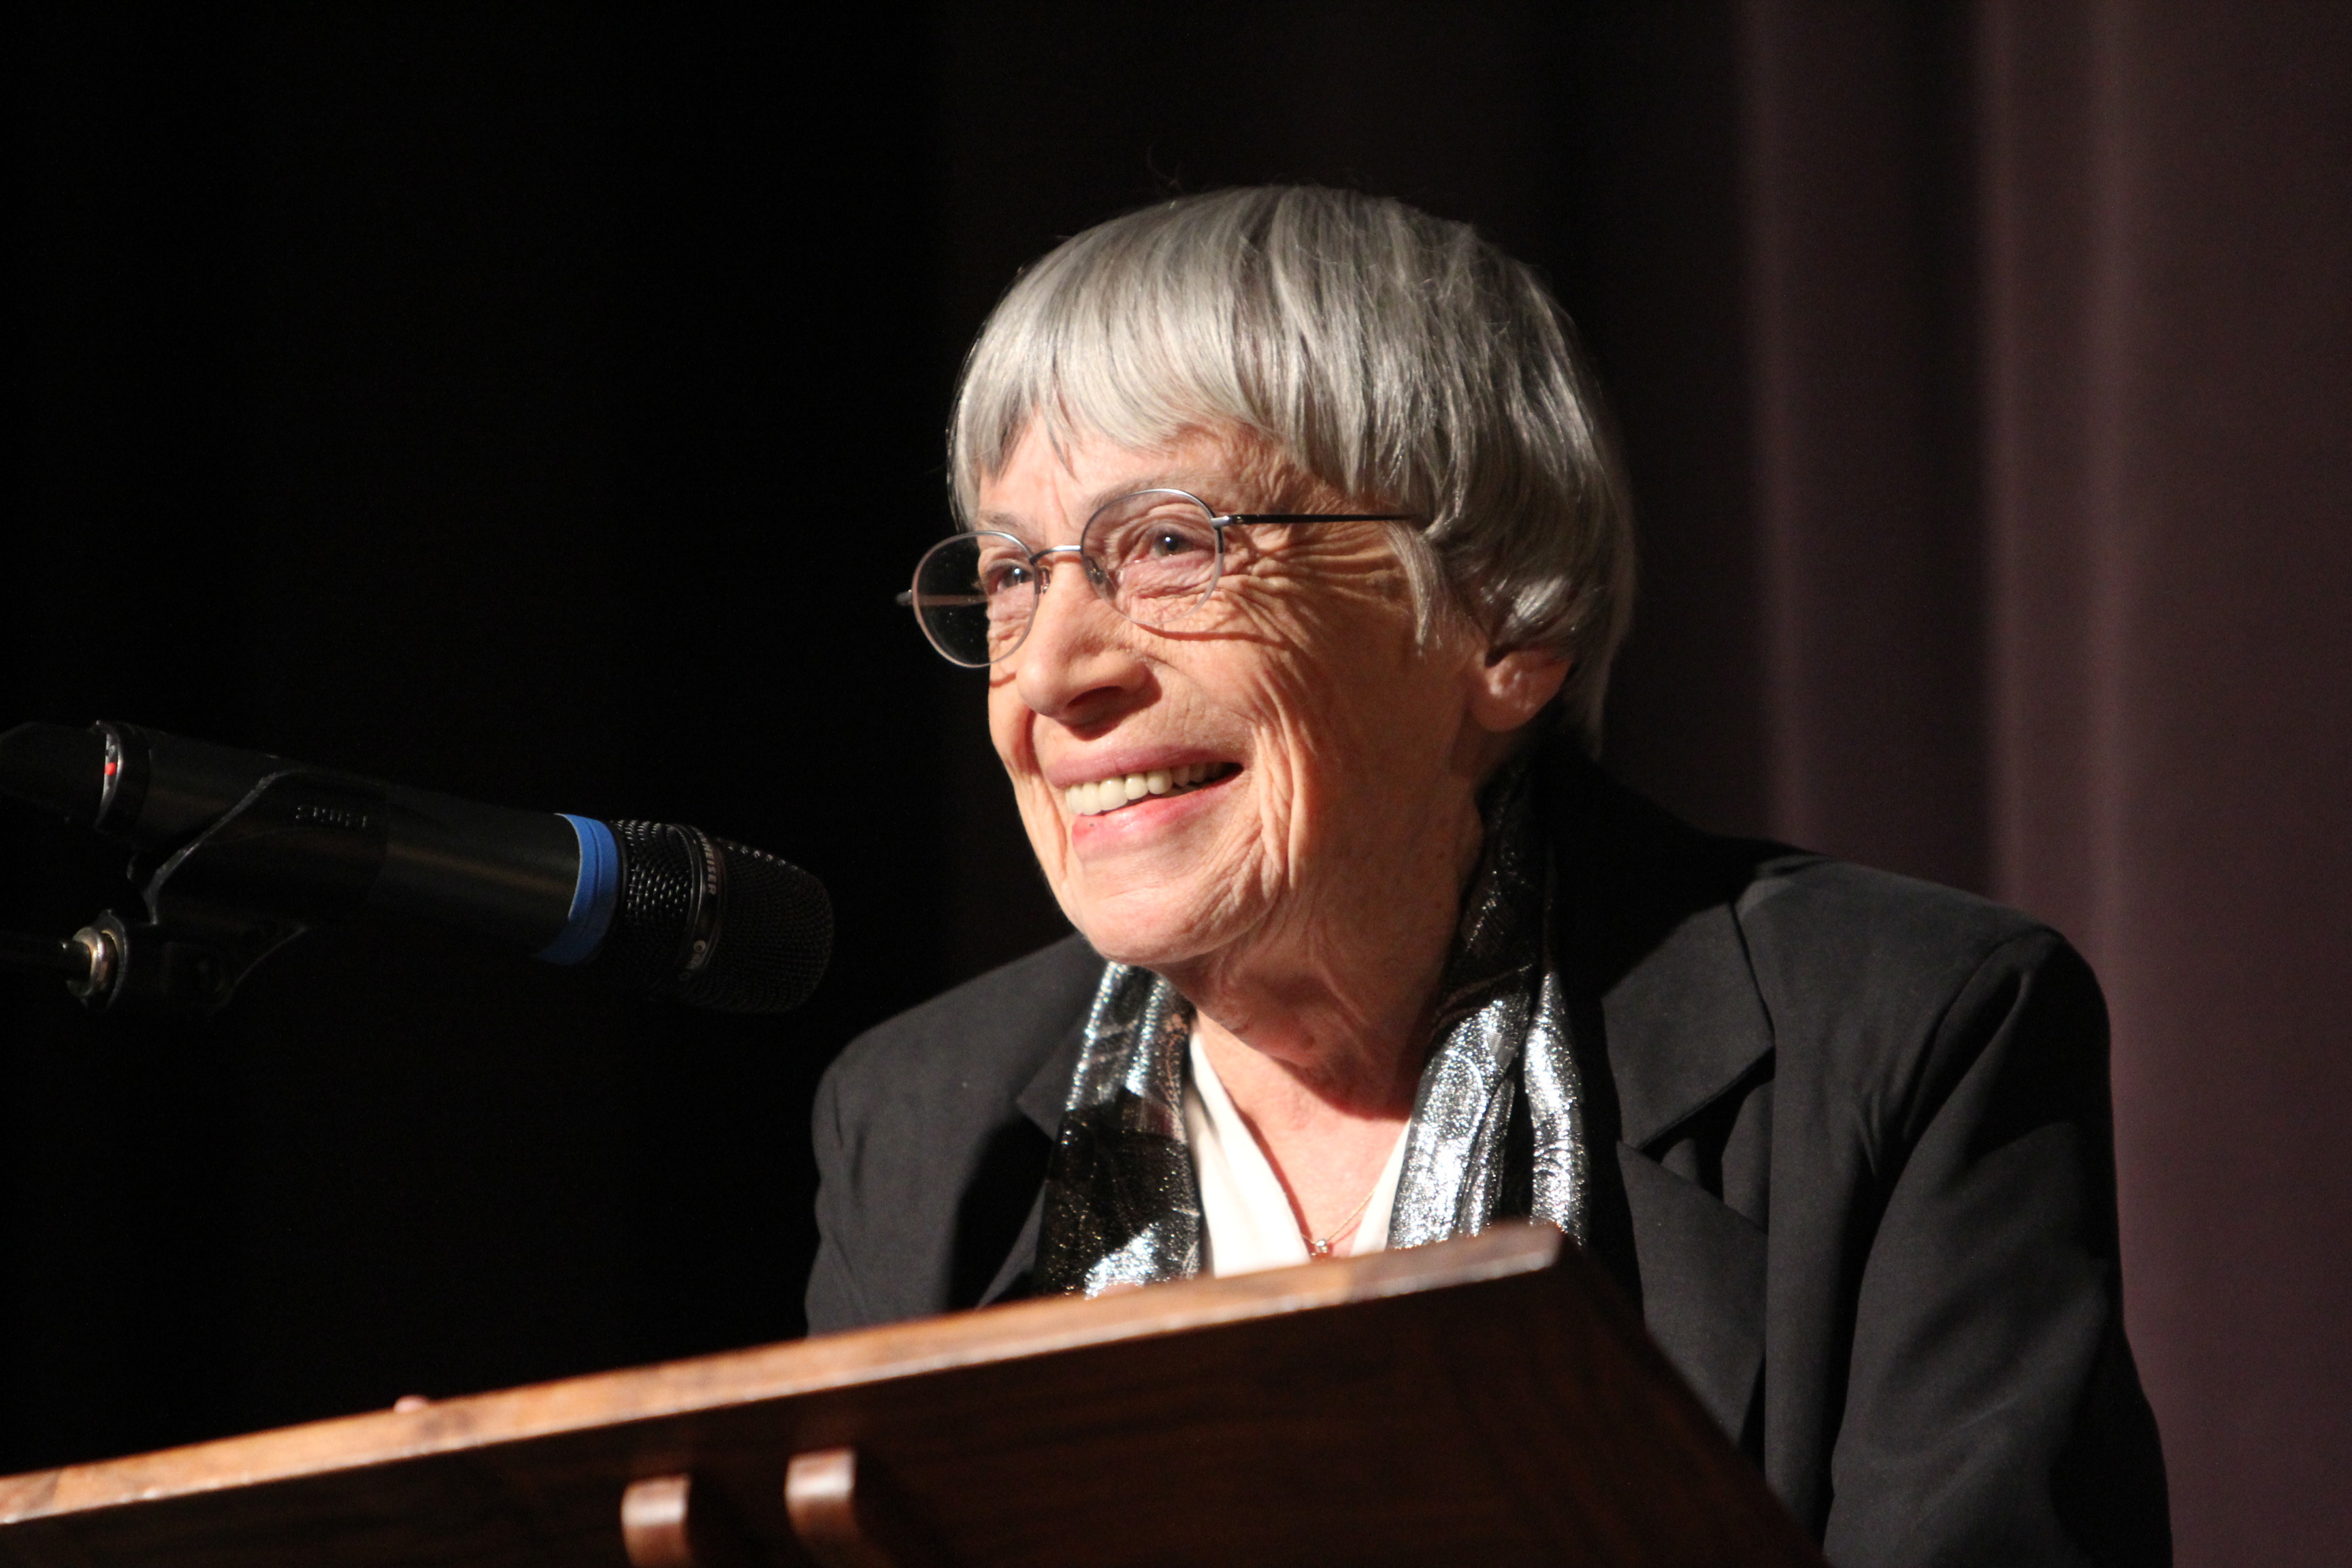 Ursula Le Guin at rostrum